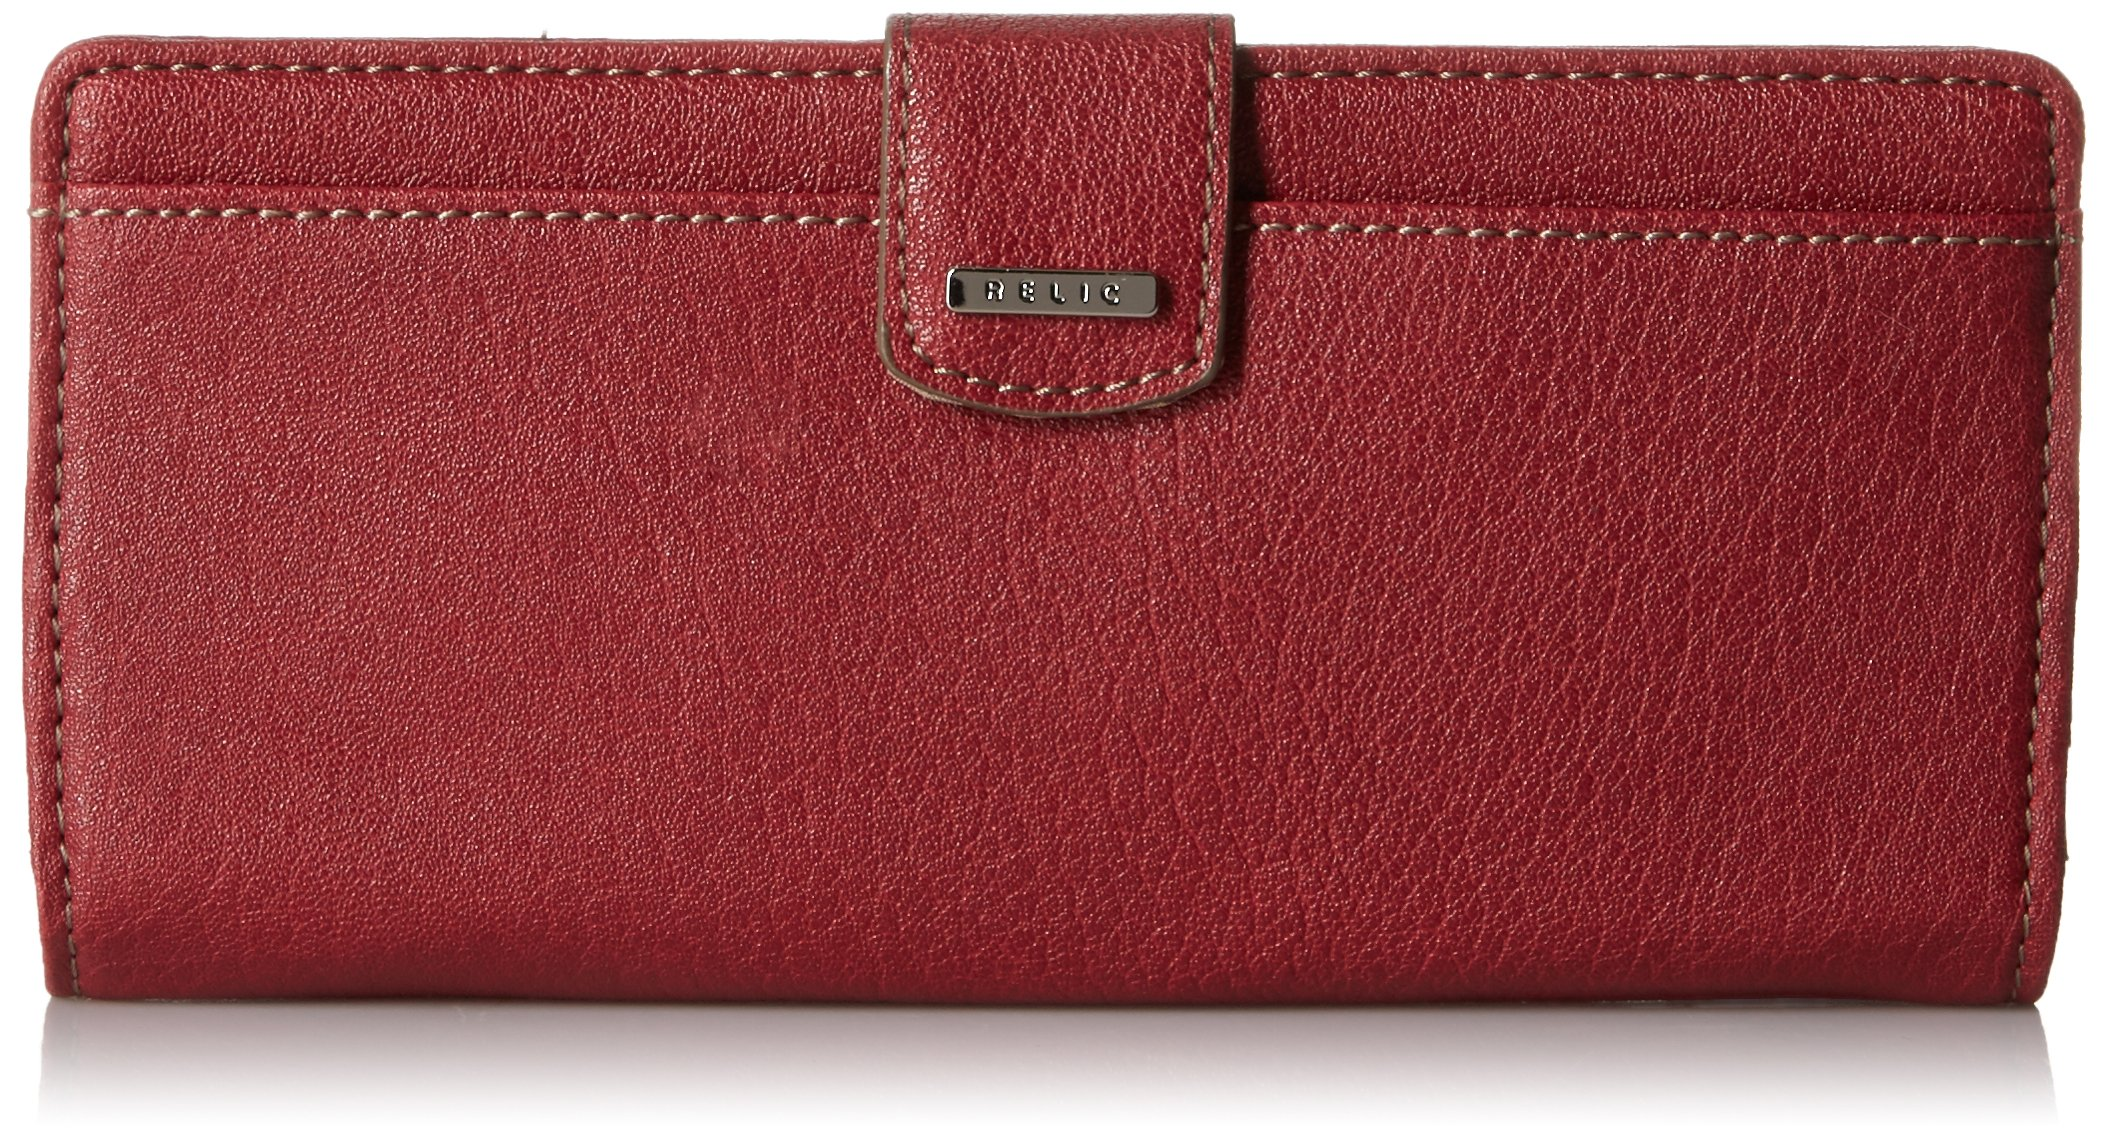 Relic by Fossil Women's RLS2644626 Checkbook Cover, Baked Apple, One Size